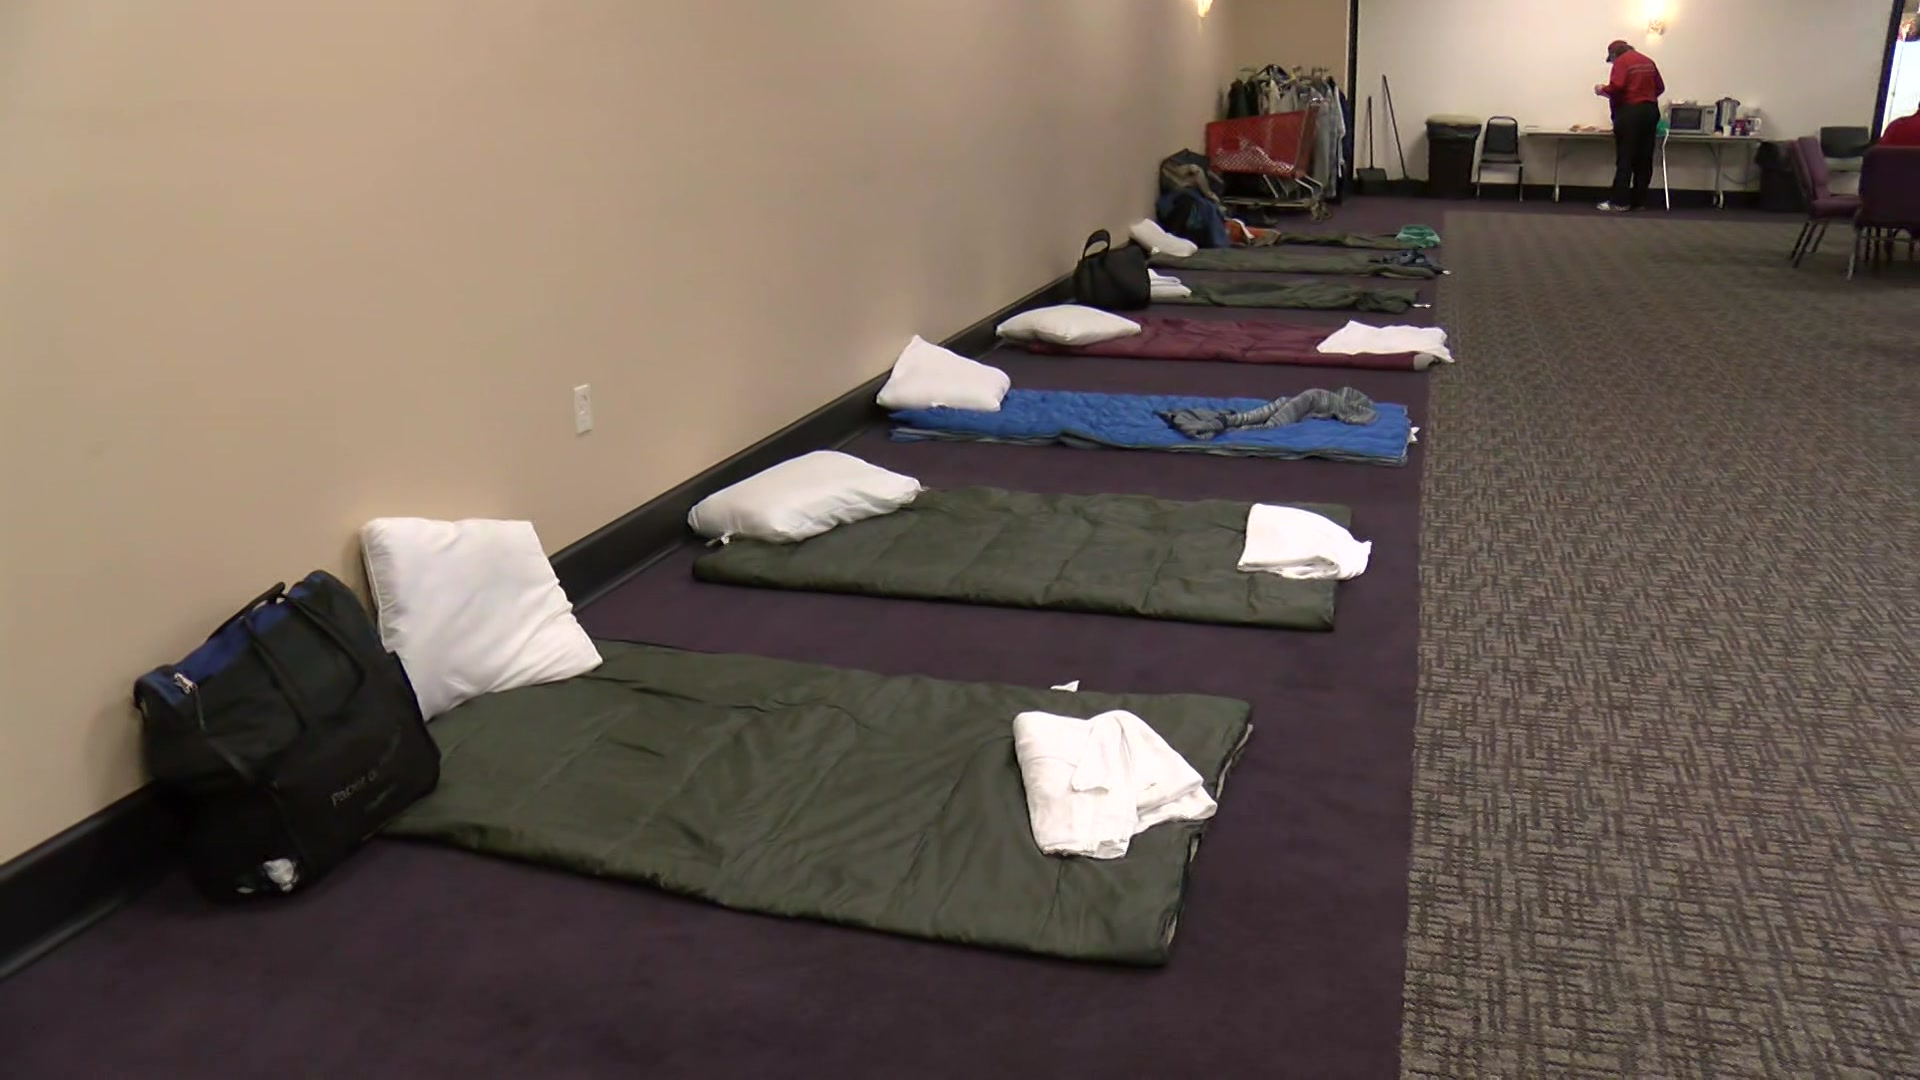 Milwaukee County Board to consider changes to warming shelter opening policies